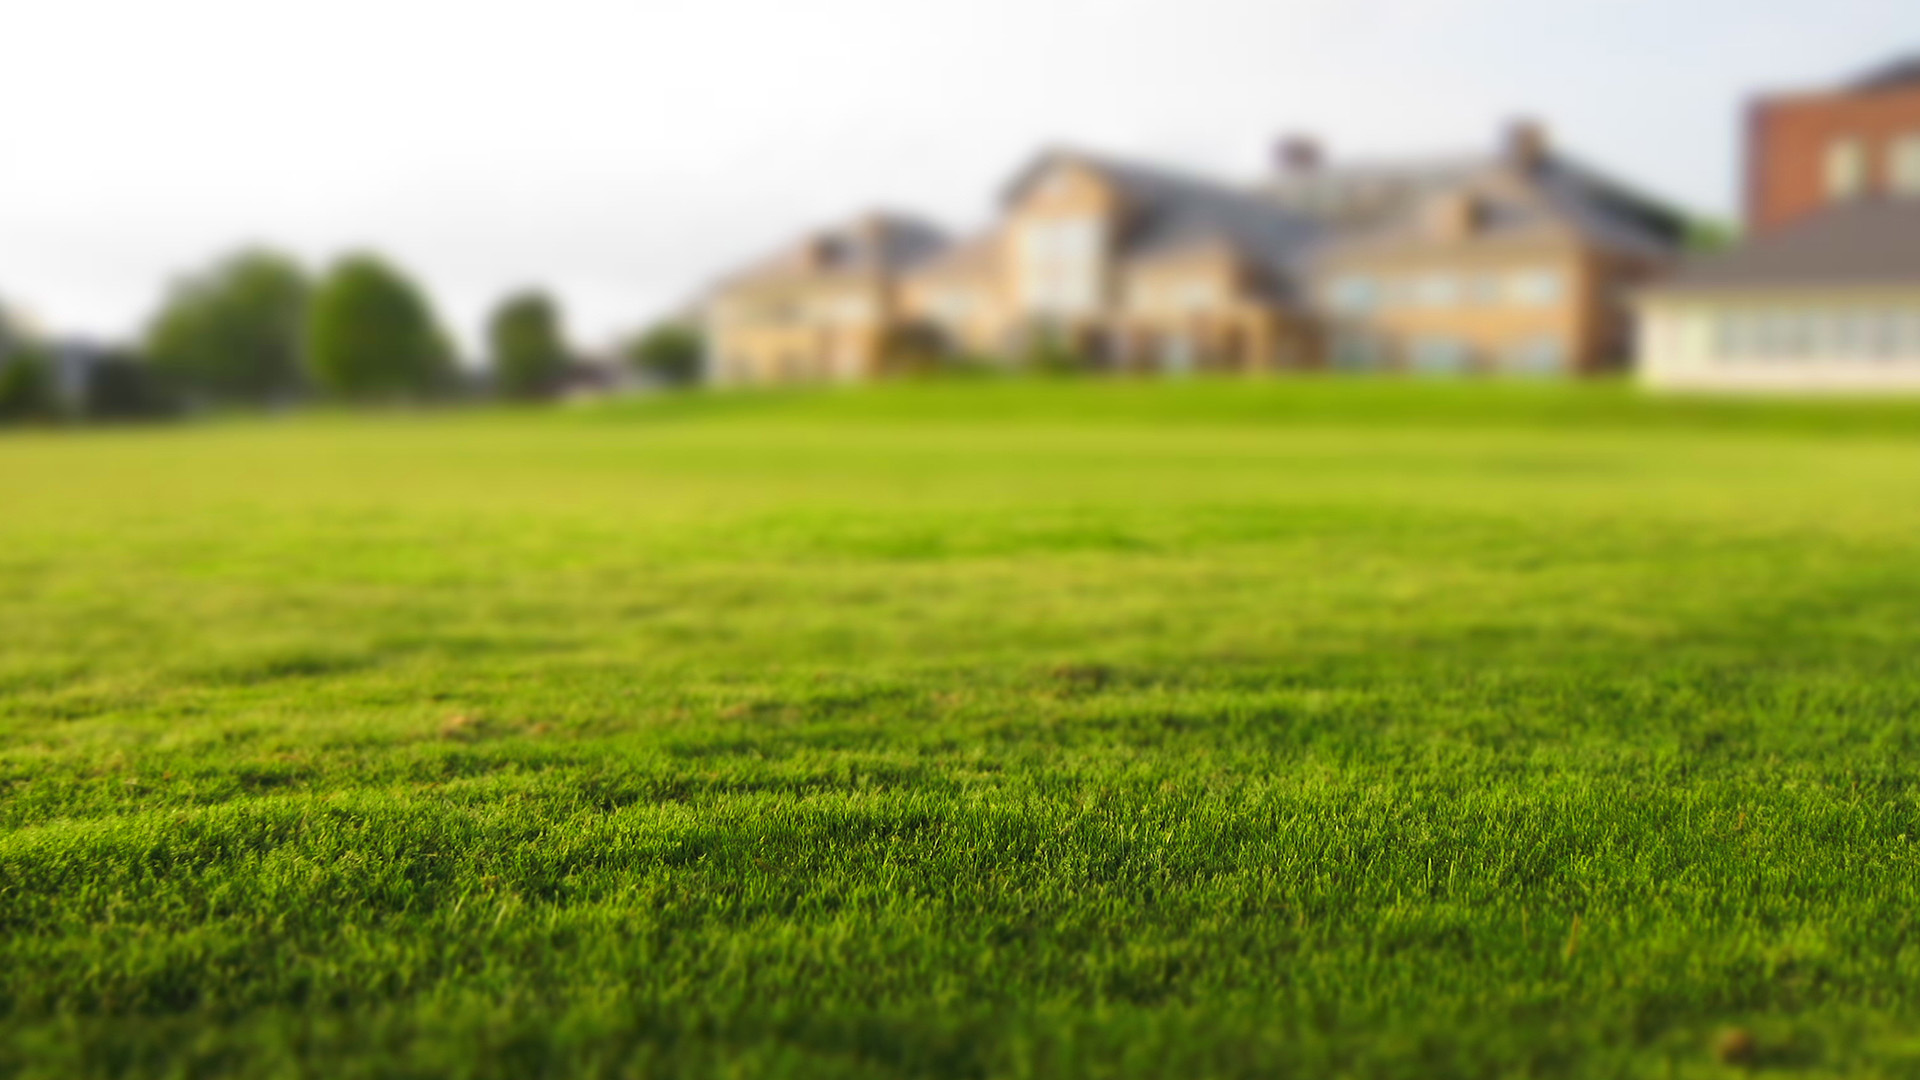 Our obsession with green lawns drives me nuts, and it's killing the environment